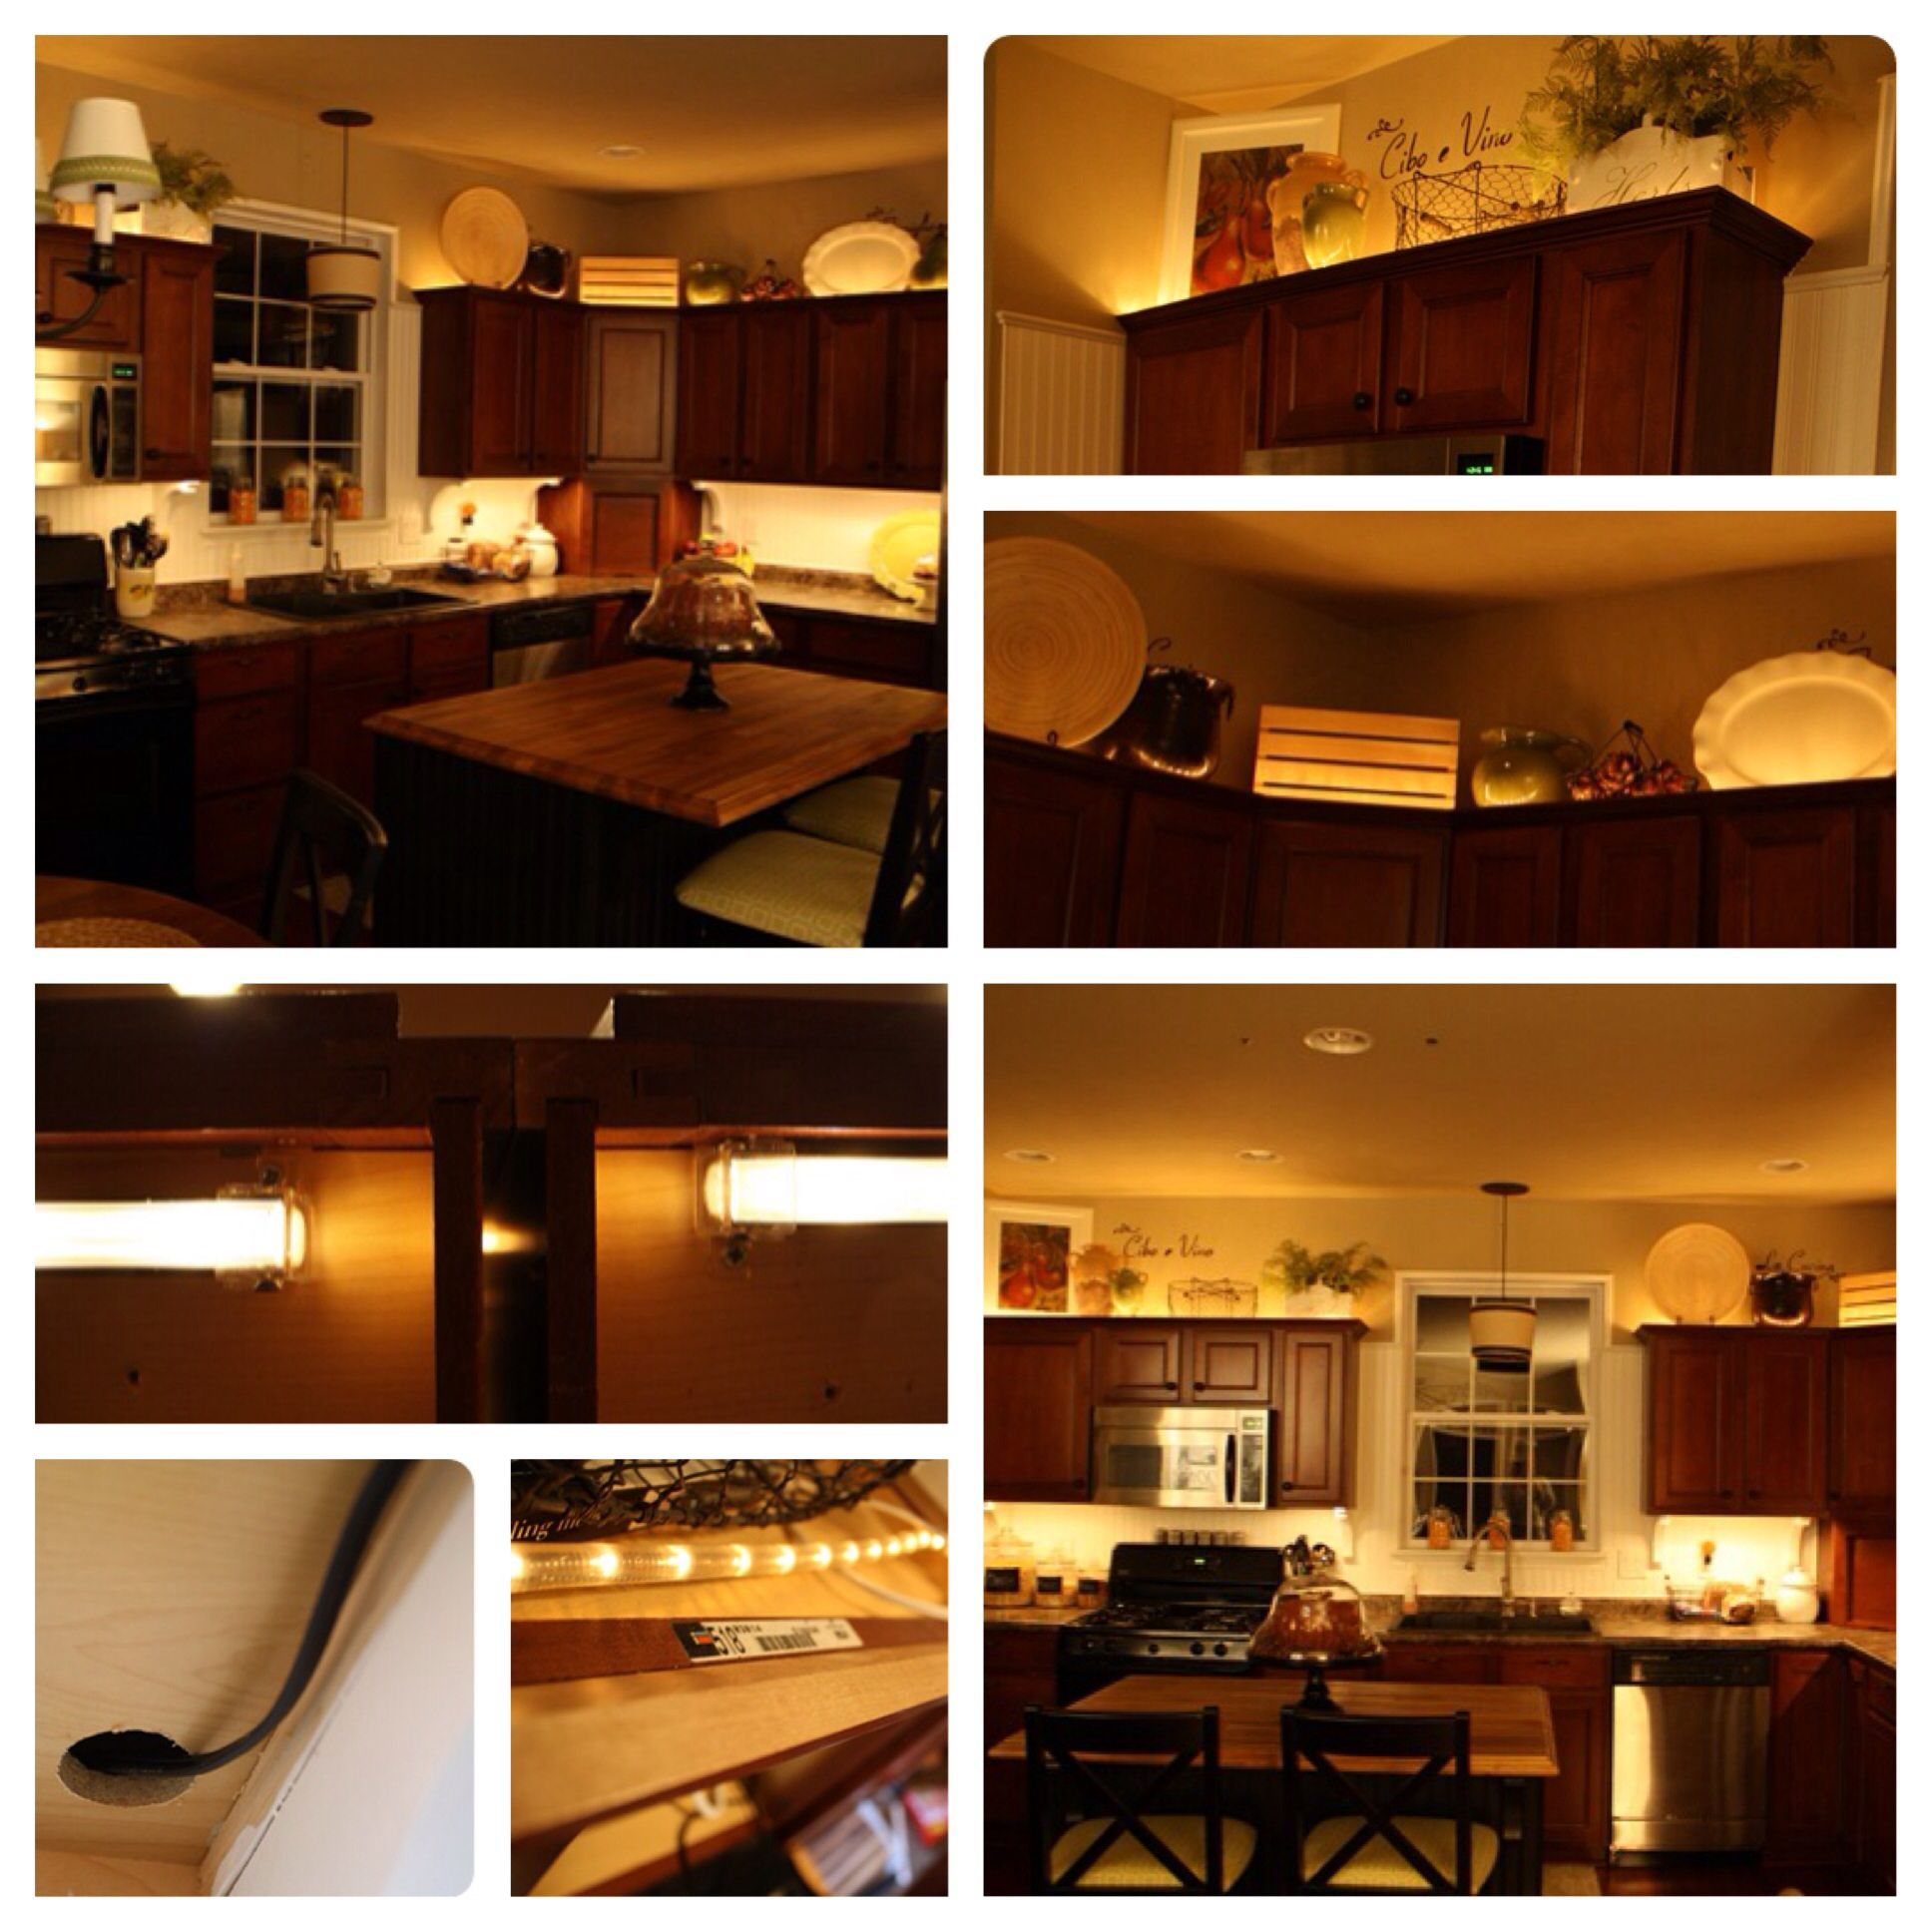 Under Kitchen Cabinet Lighting Ideas: Best Images Rustic Decor Above Kitchen Cabinets Ideas For